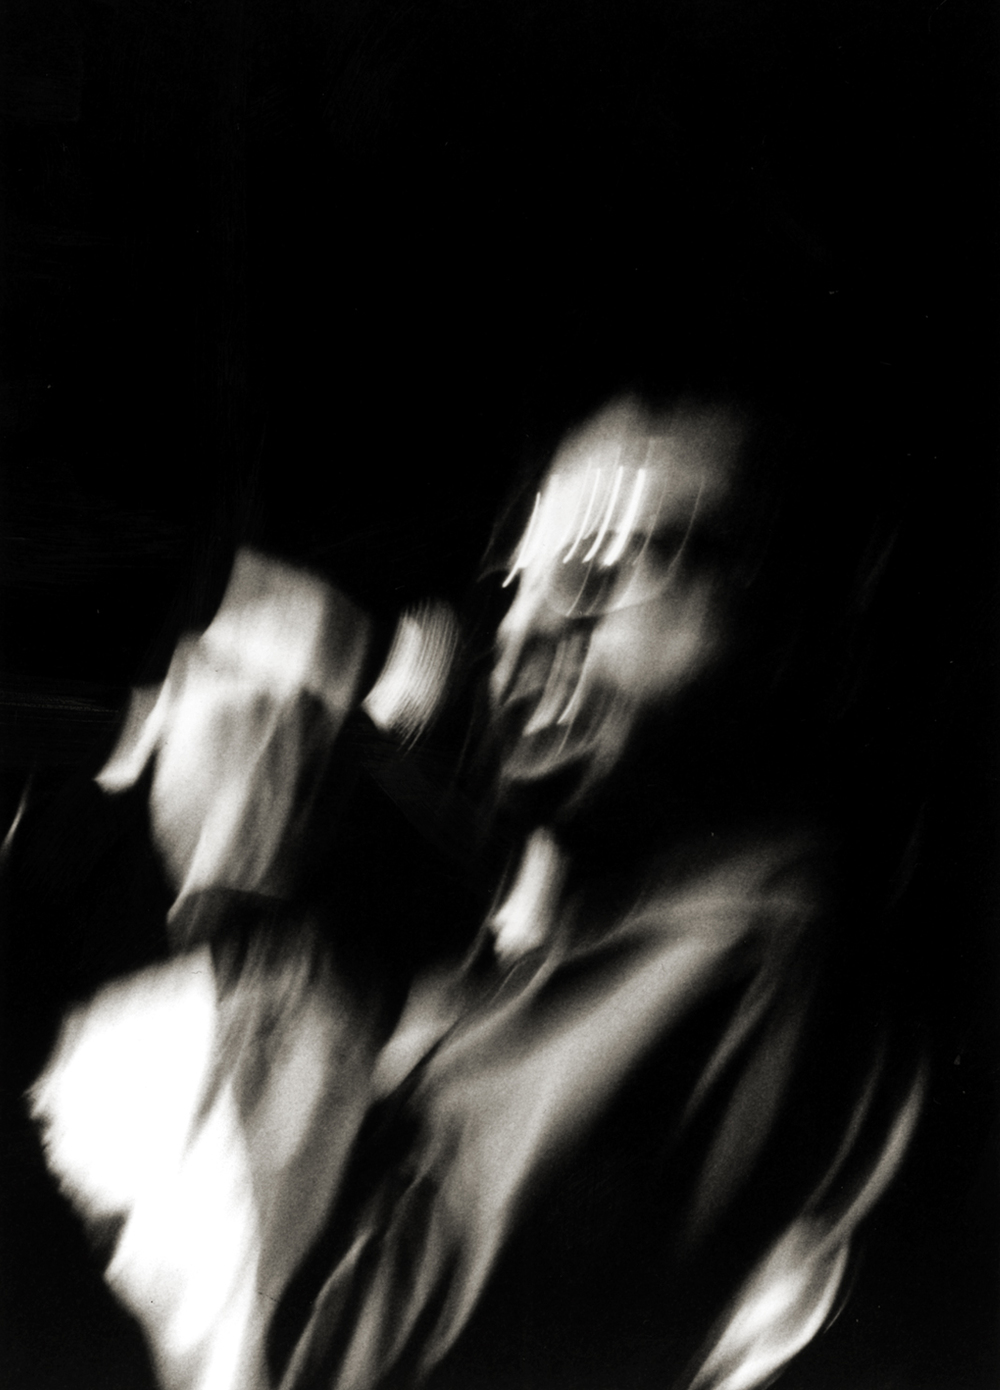 HR of Bad Brains, Maritime Hall, SF, CA 6/20/98